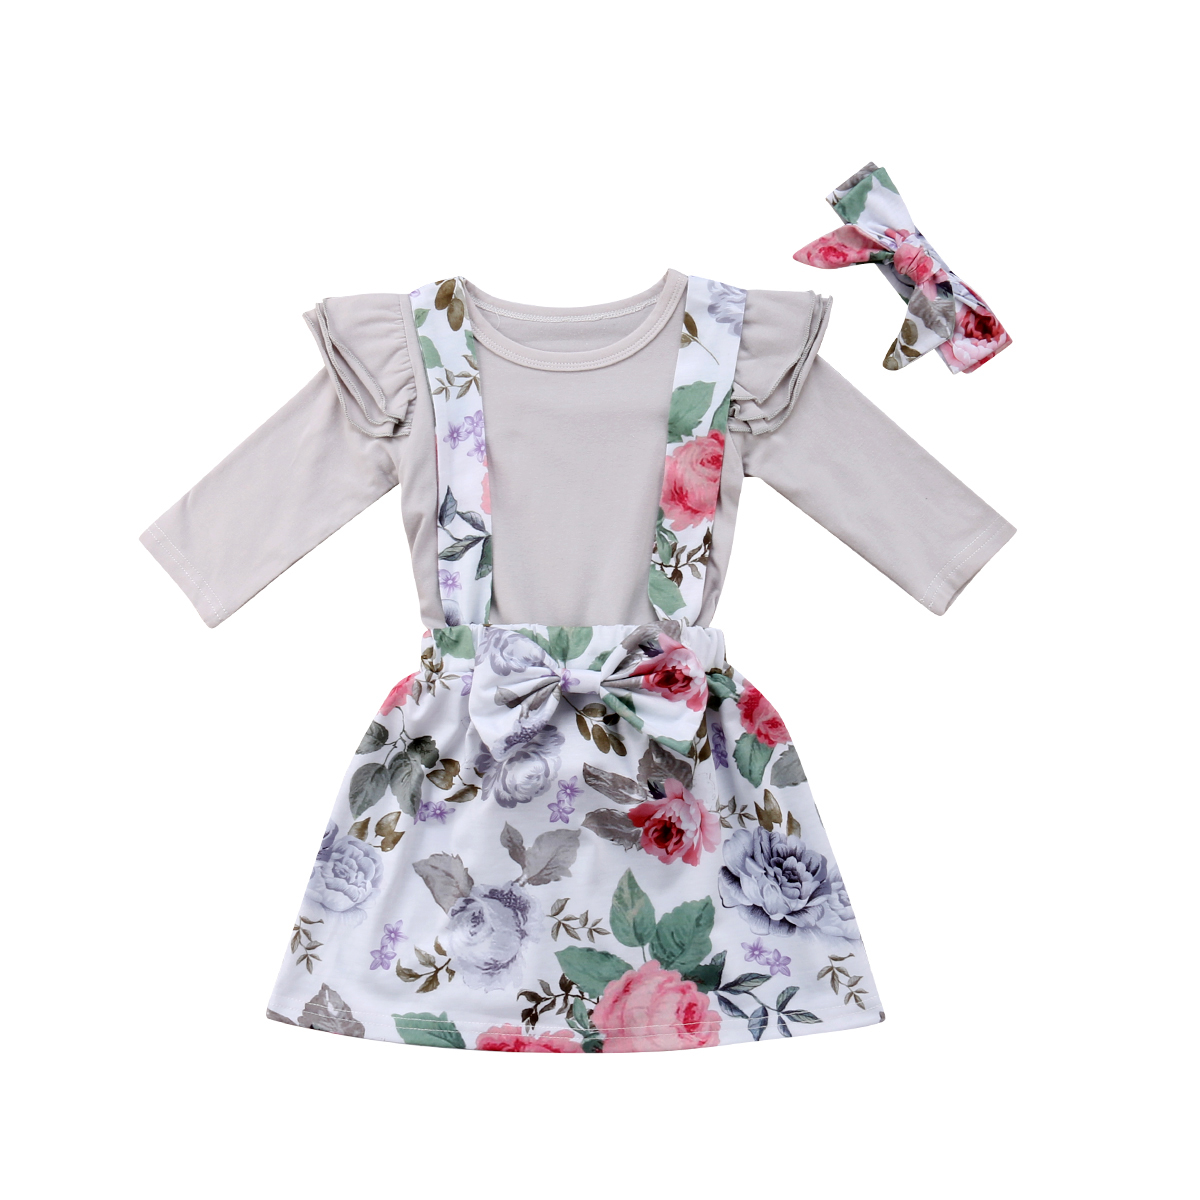 Apprehensive 2018 Hot-selling New Baby Girls Clothes Sets Long Sleeve Top T-shirt+floral Overalls Bib Skirt 2pcs/suit Mother & Kids Girls' Baby Clothing